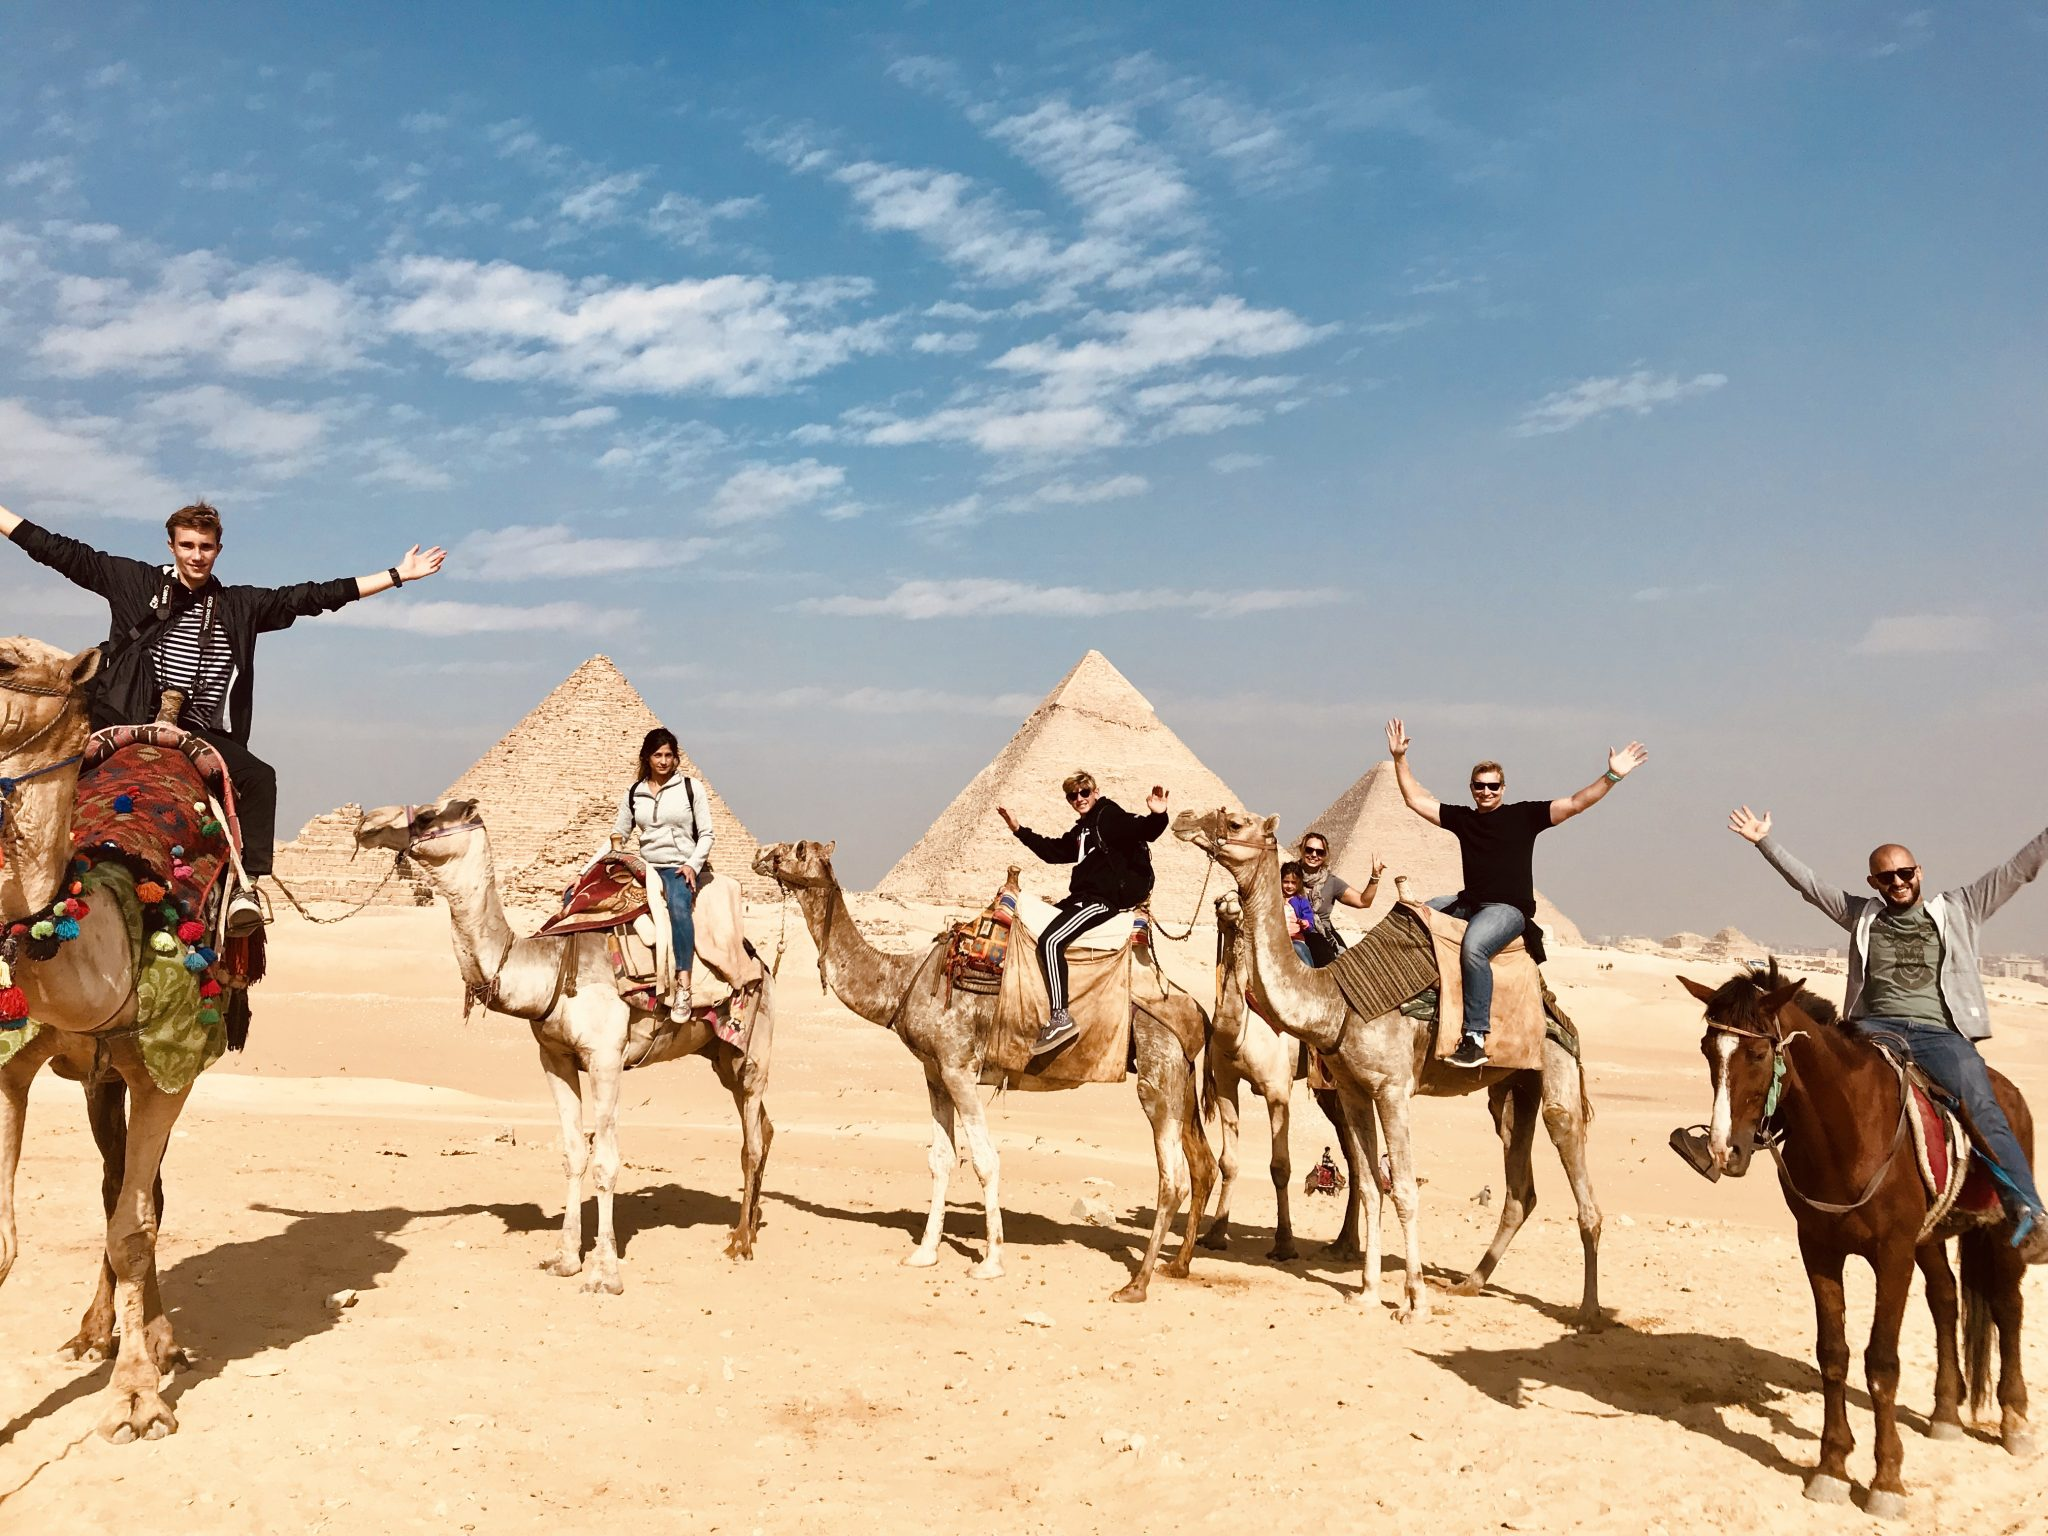 pyramids of giza on camels in cairo